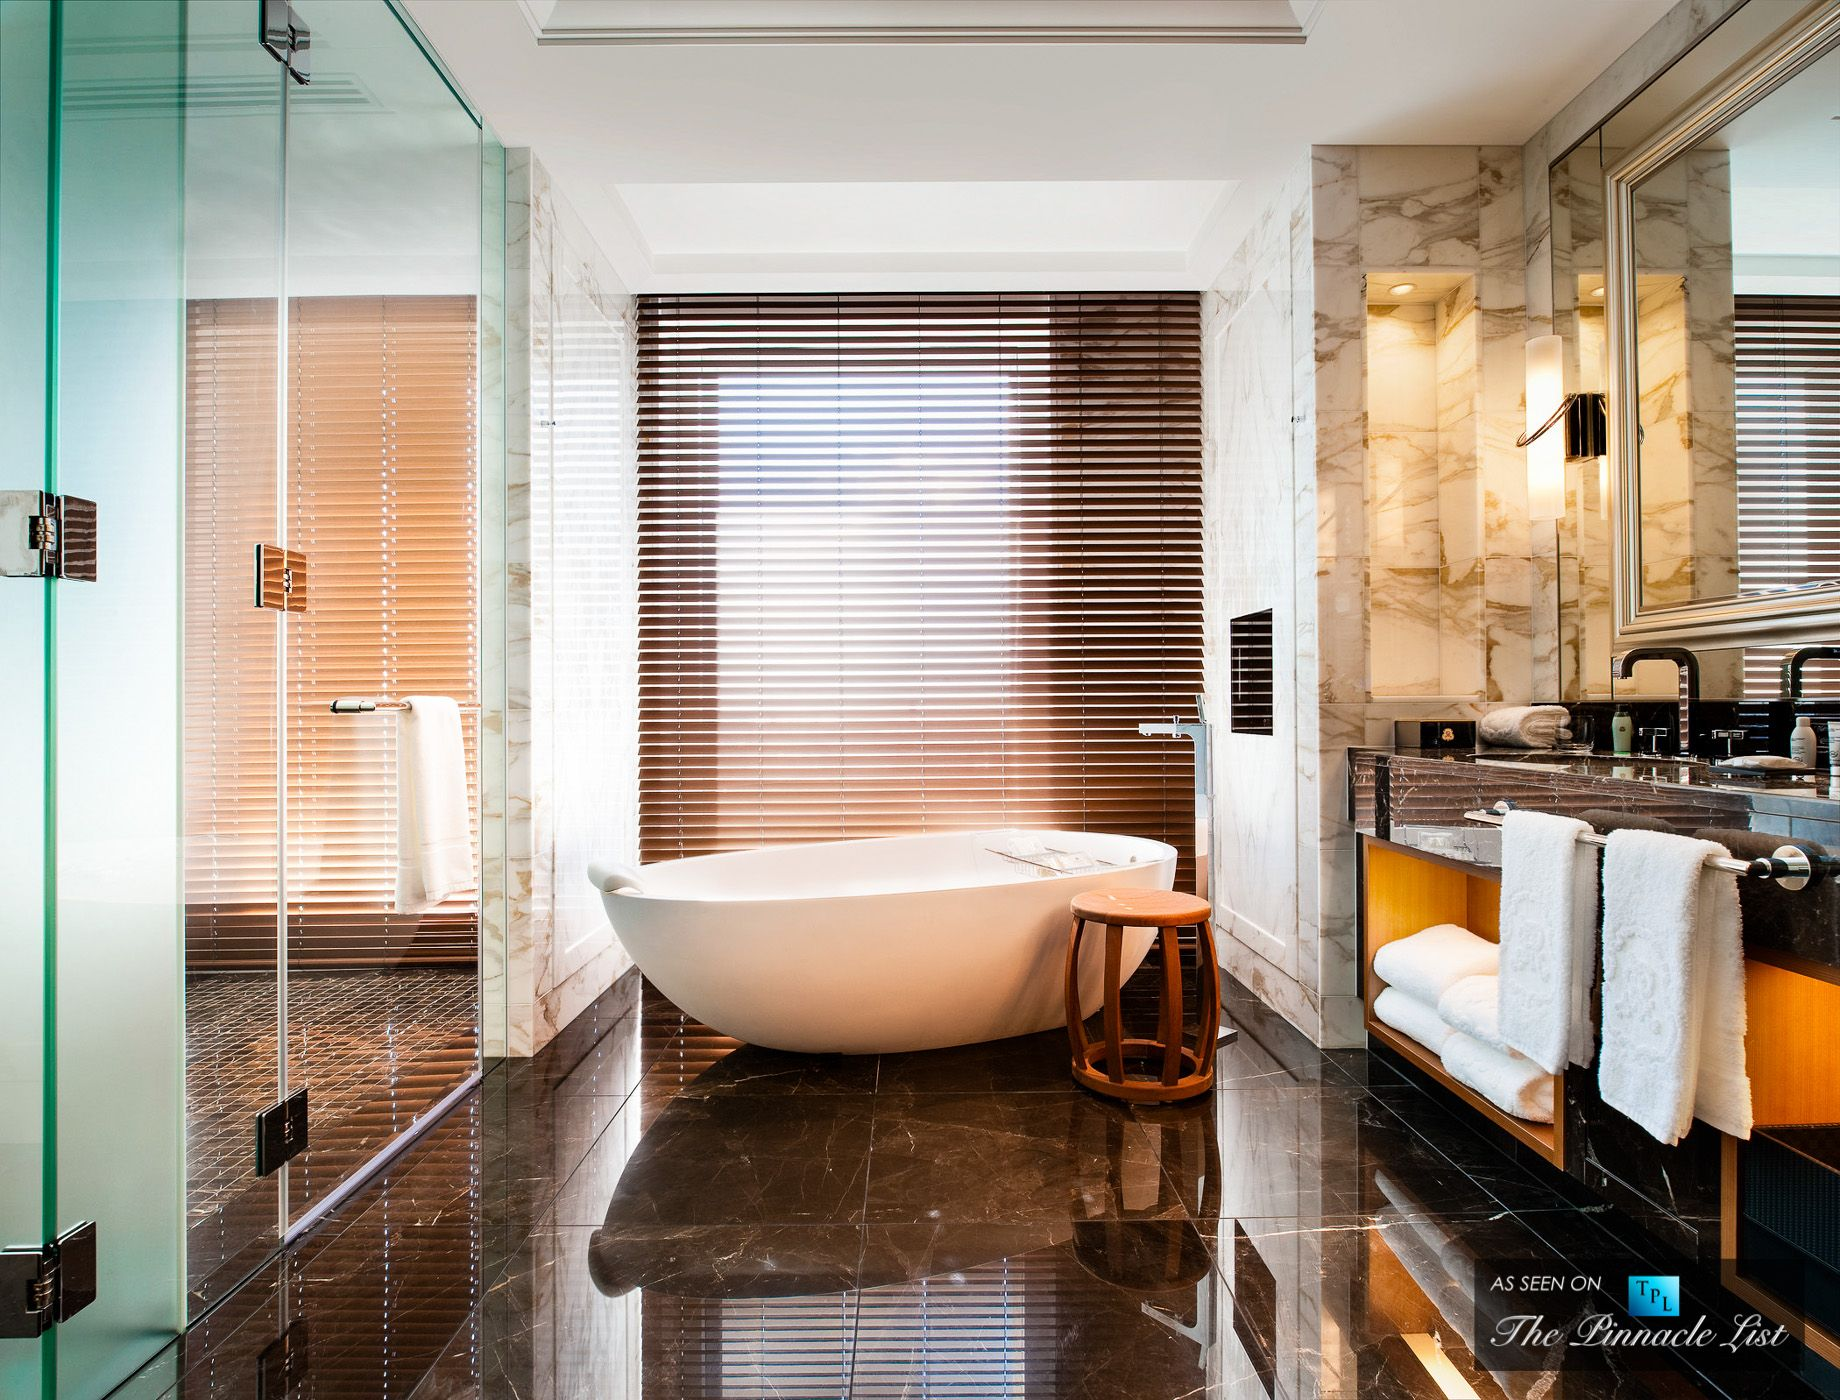 Luxury Bathrooms Hotels luxury hotel bathroom design ideas 5 on living room simple home